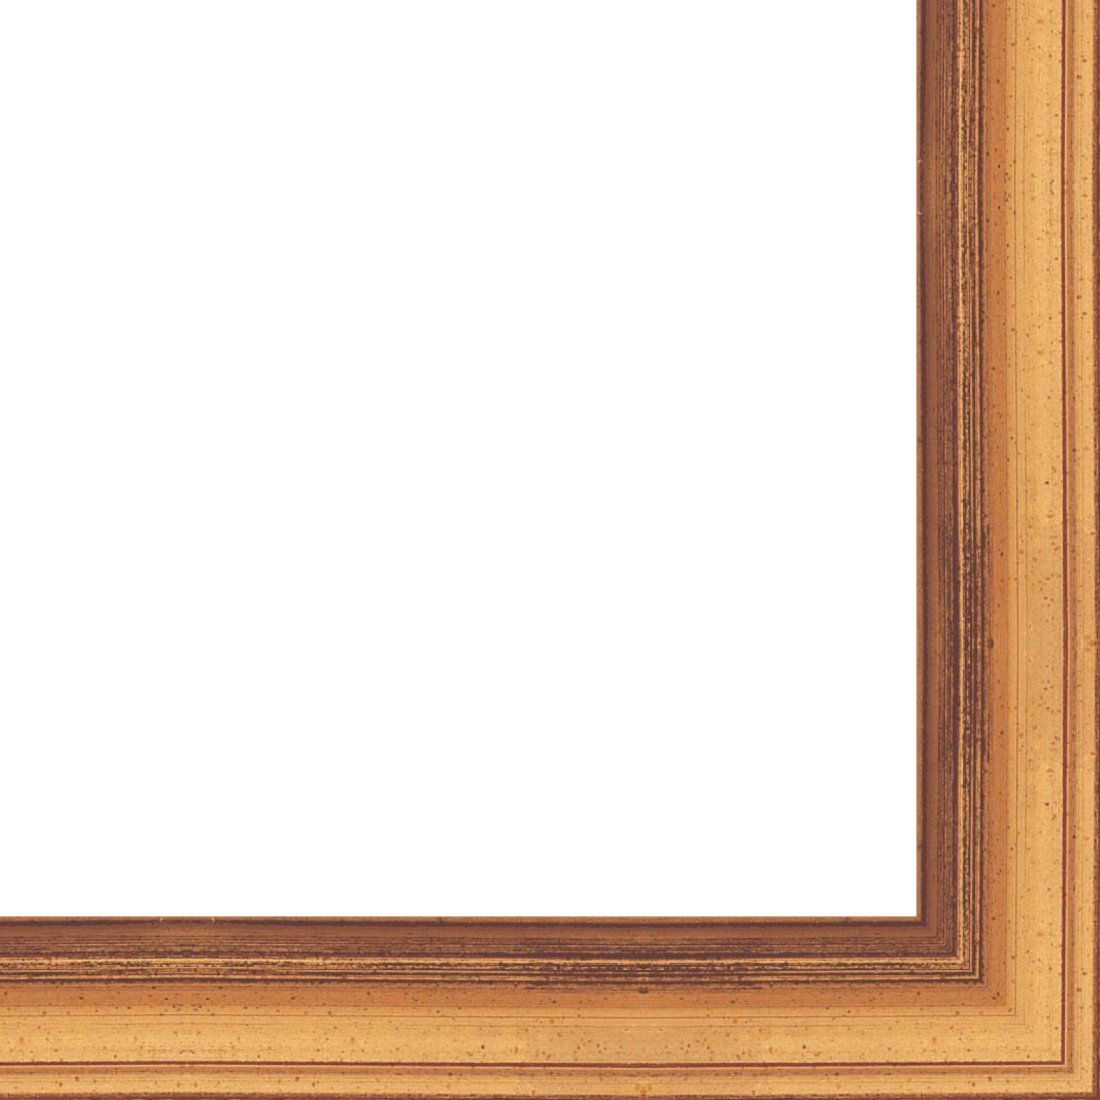 7//16 rabbet depth Wood Picture Frame Moulding 18ft bundle Traditional Antique Gold Finish 1 width